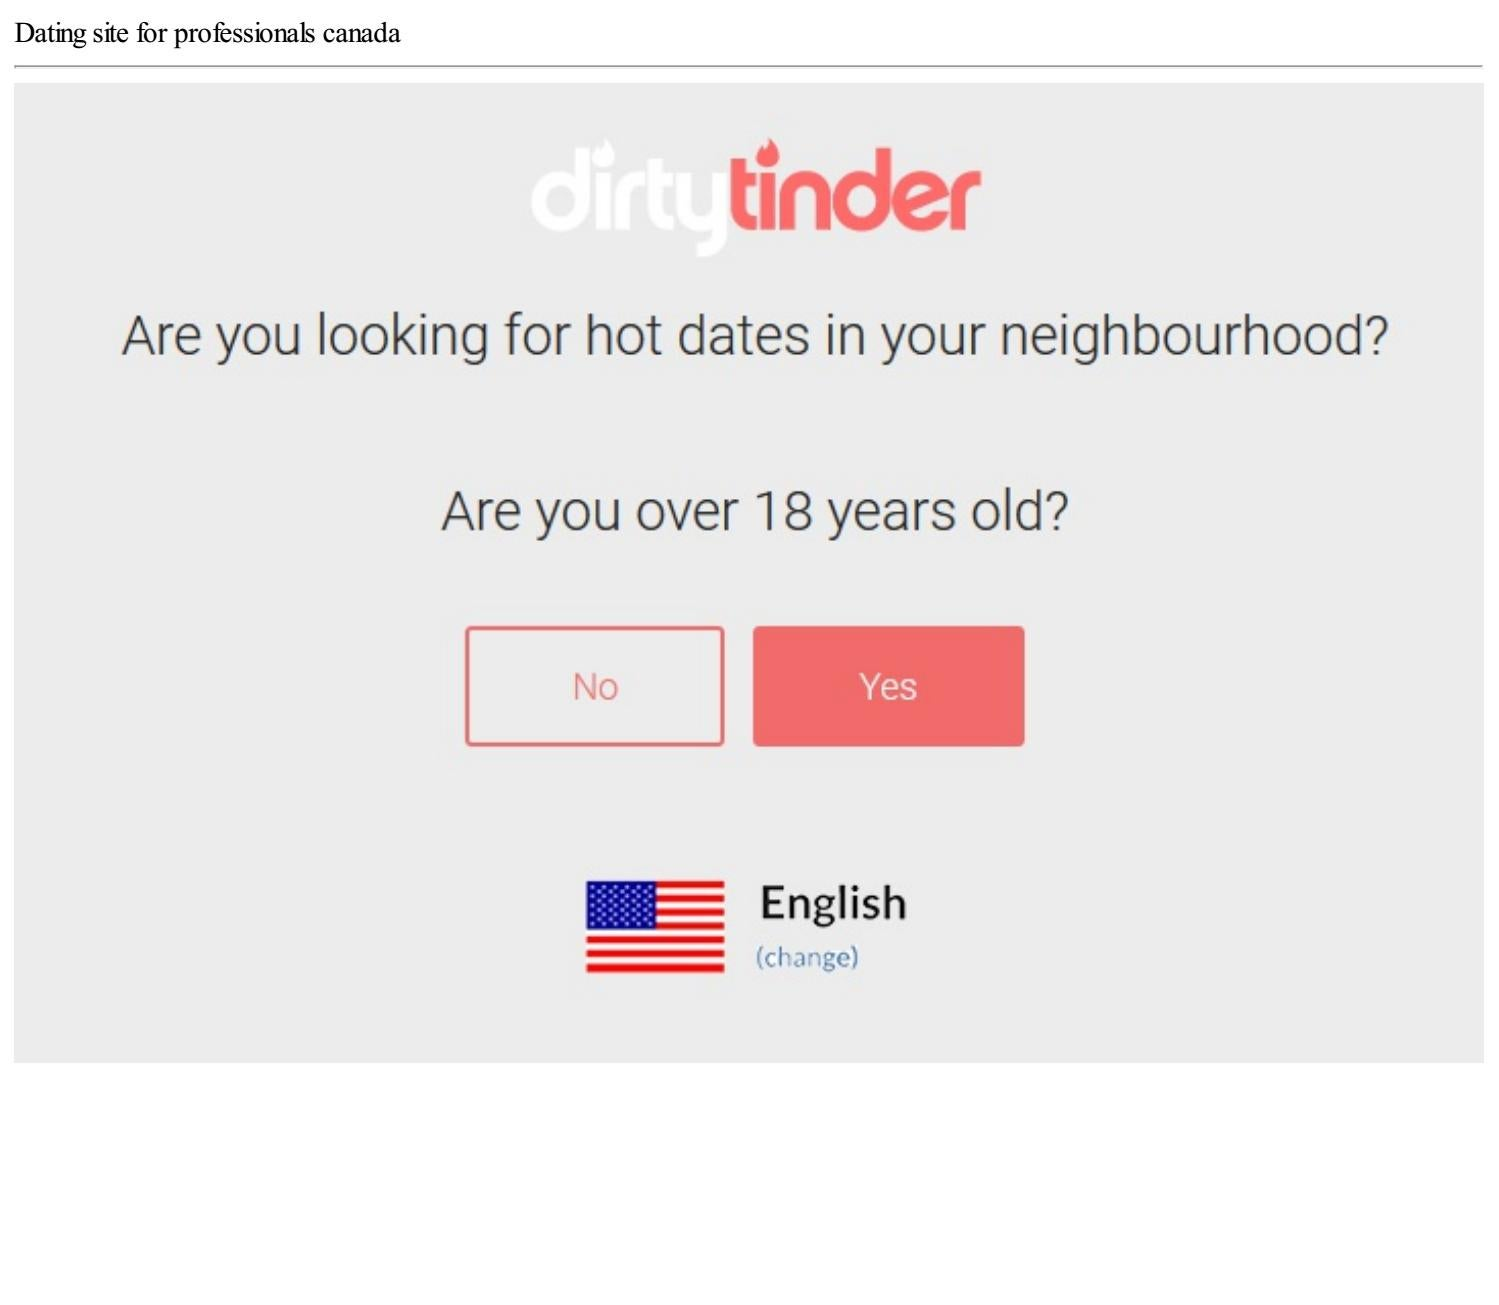 Dating site for professionals canada